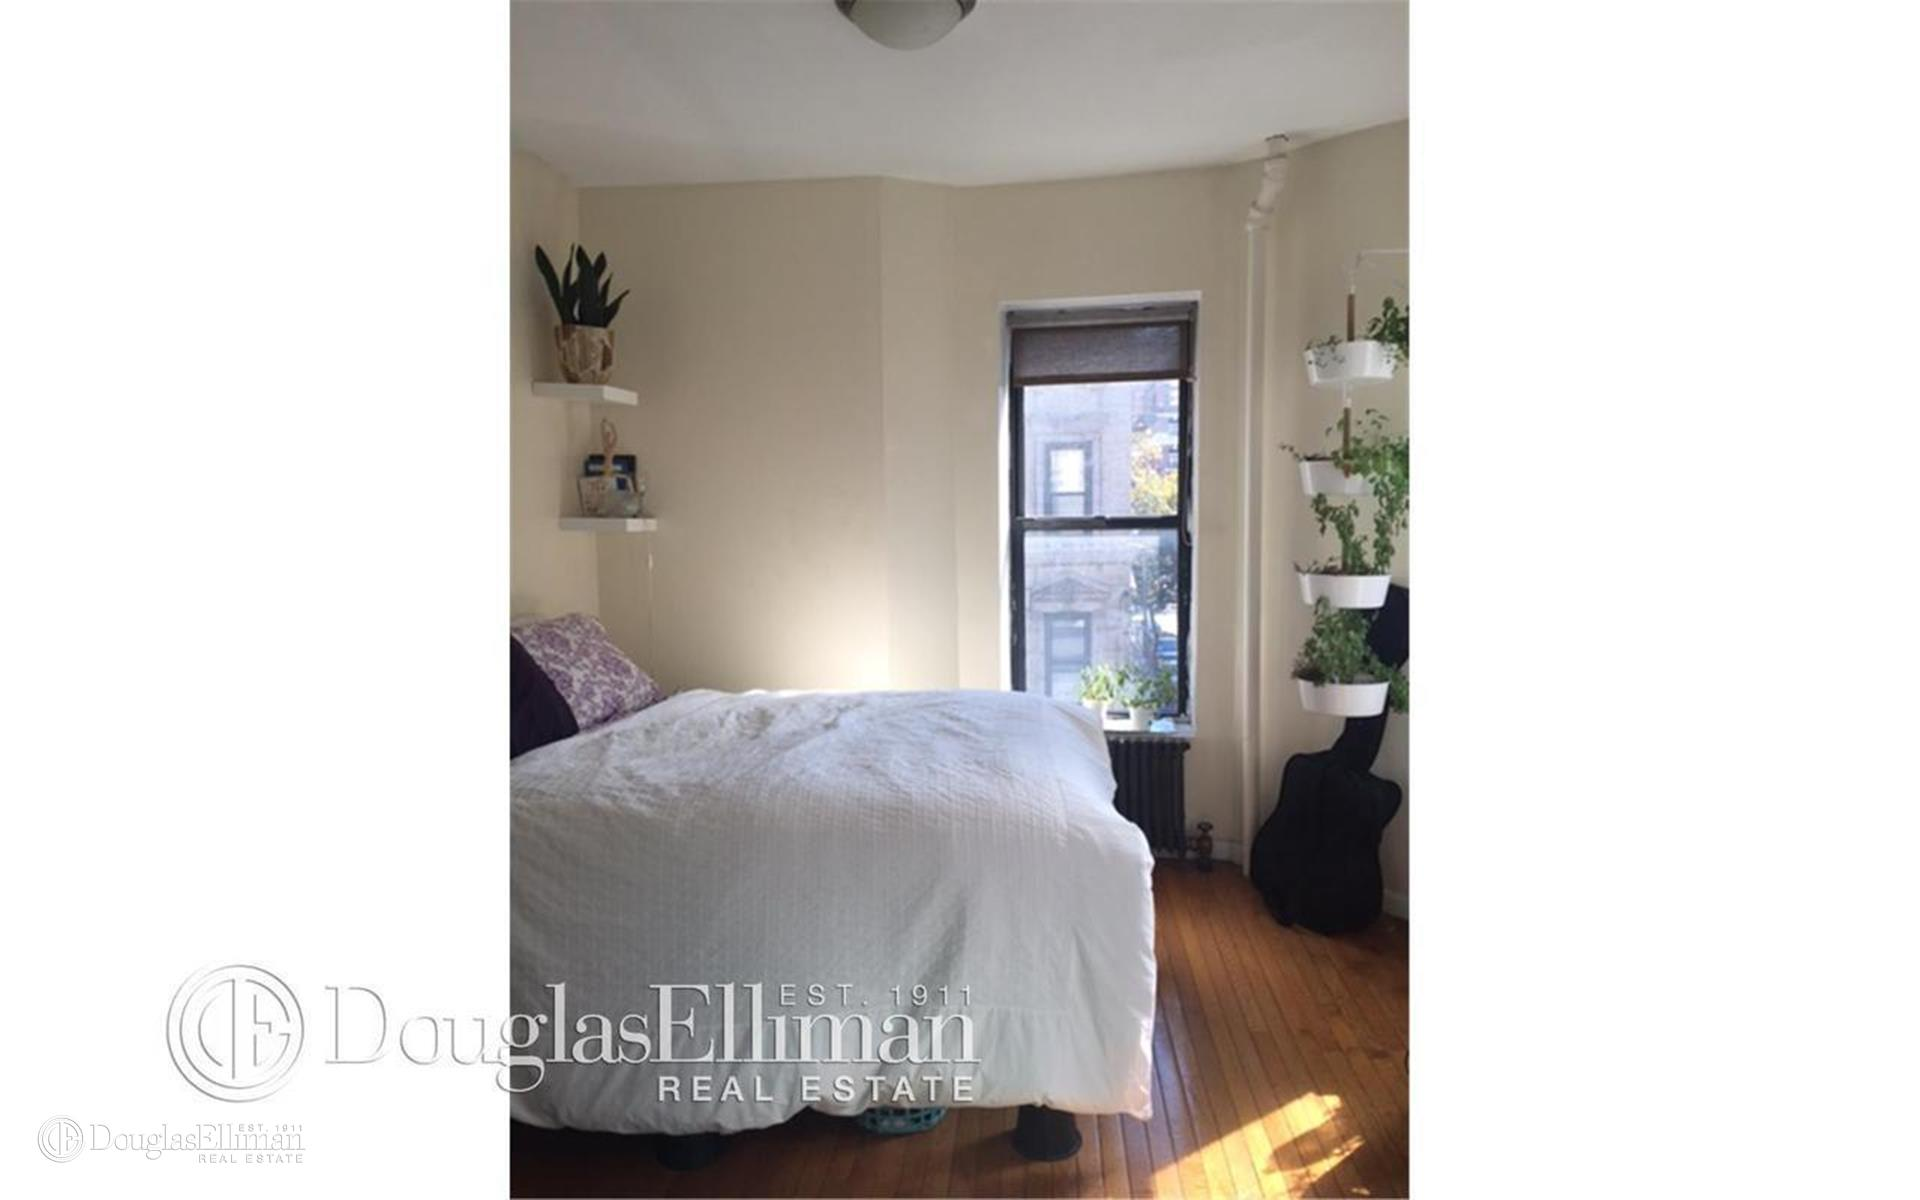 Lower East Side 2 Bedroom Rental At 71 Clinton St New York NY 10002 5 28